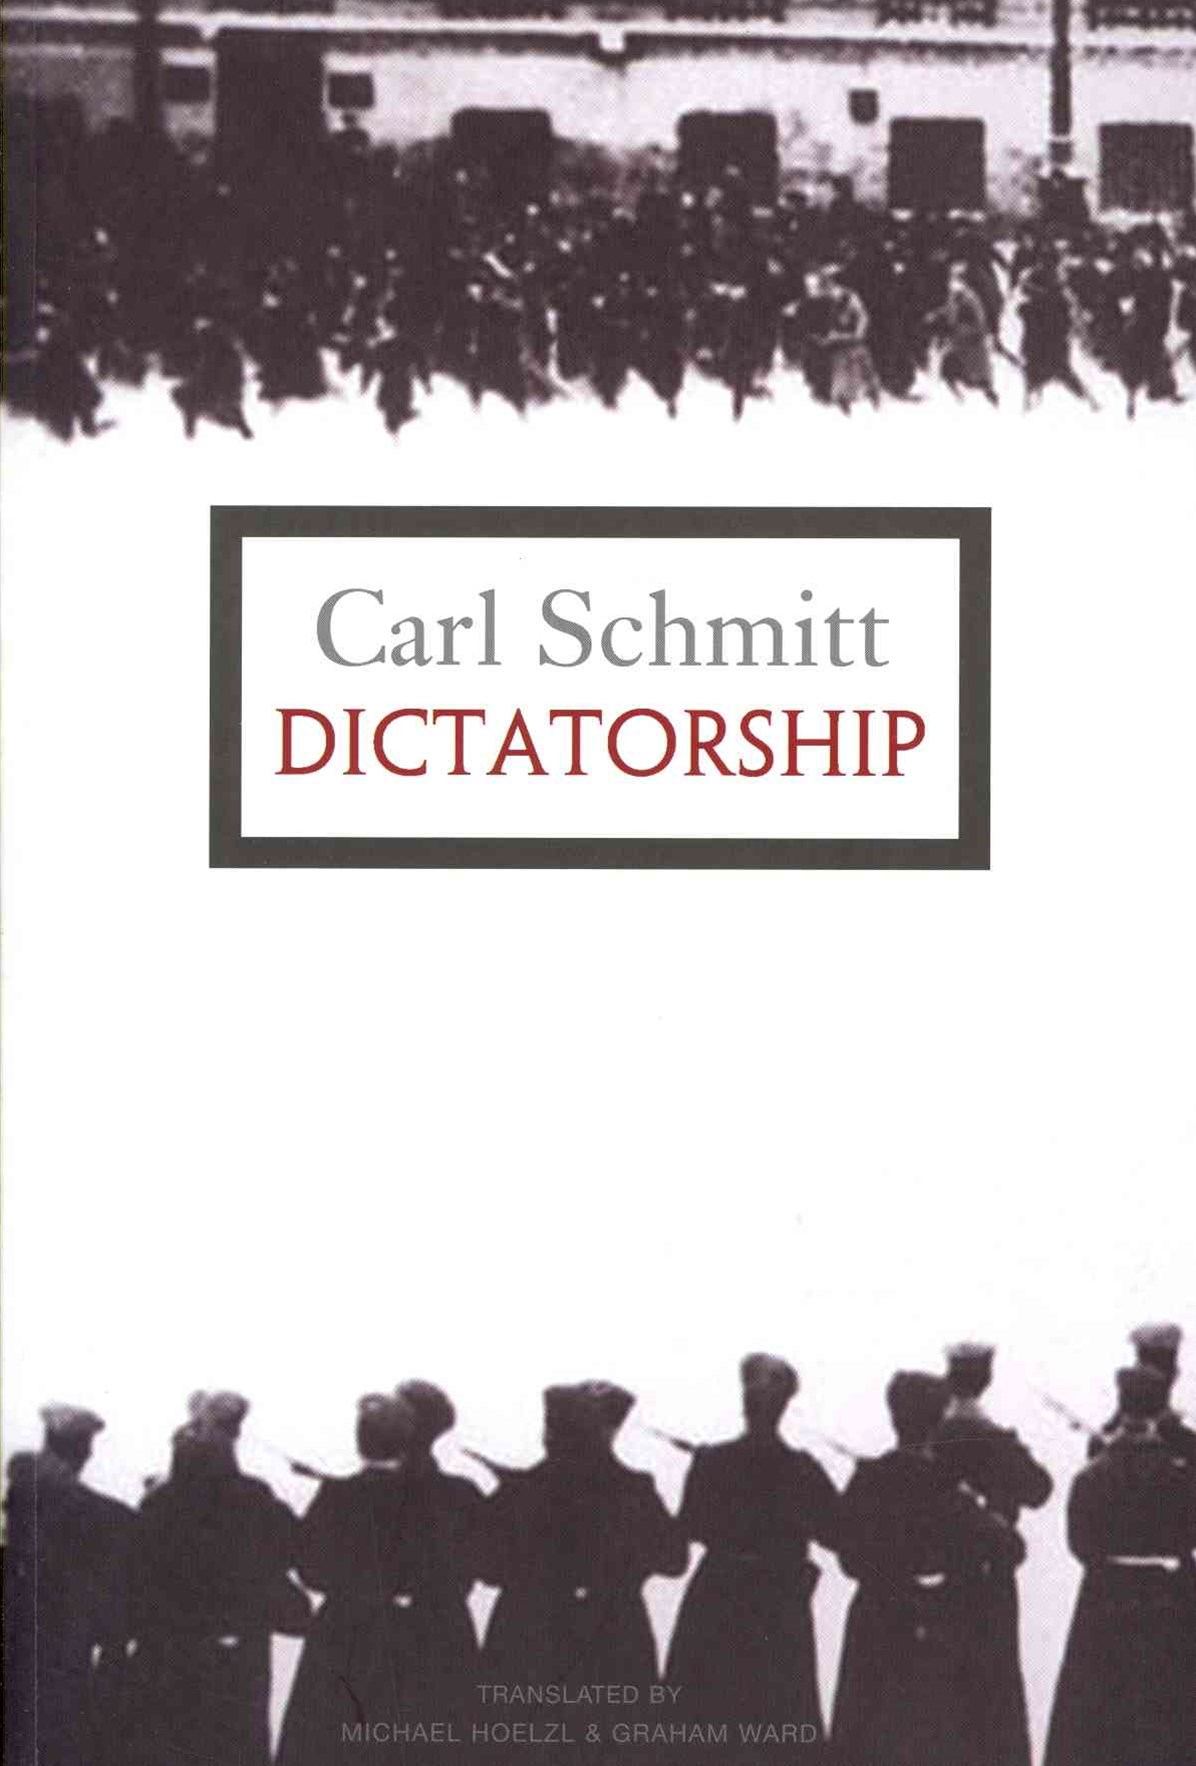 Dictatorship - From the Origin of the Modern      Concept of Sovereignty to Proletarian Class       Struggle